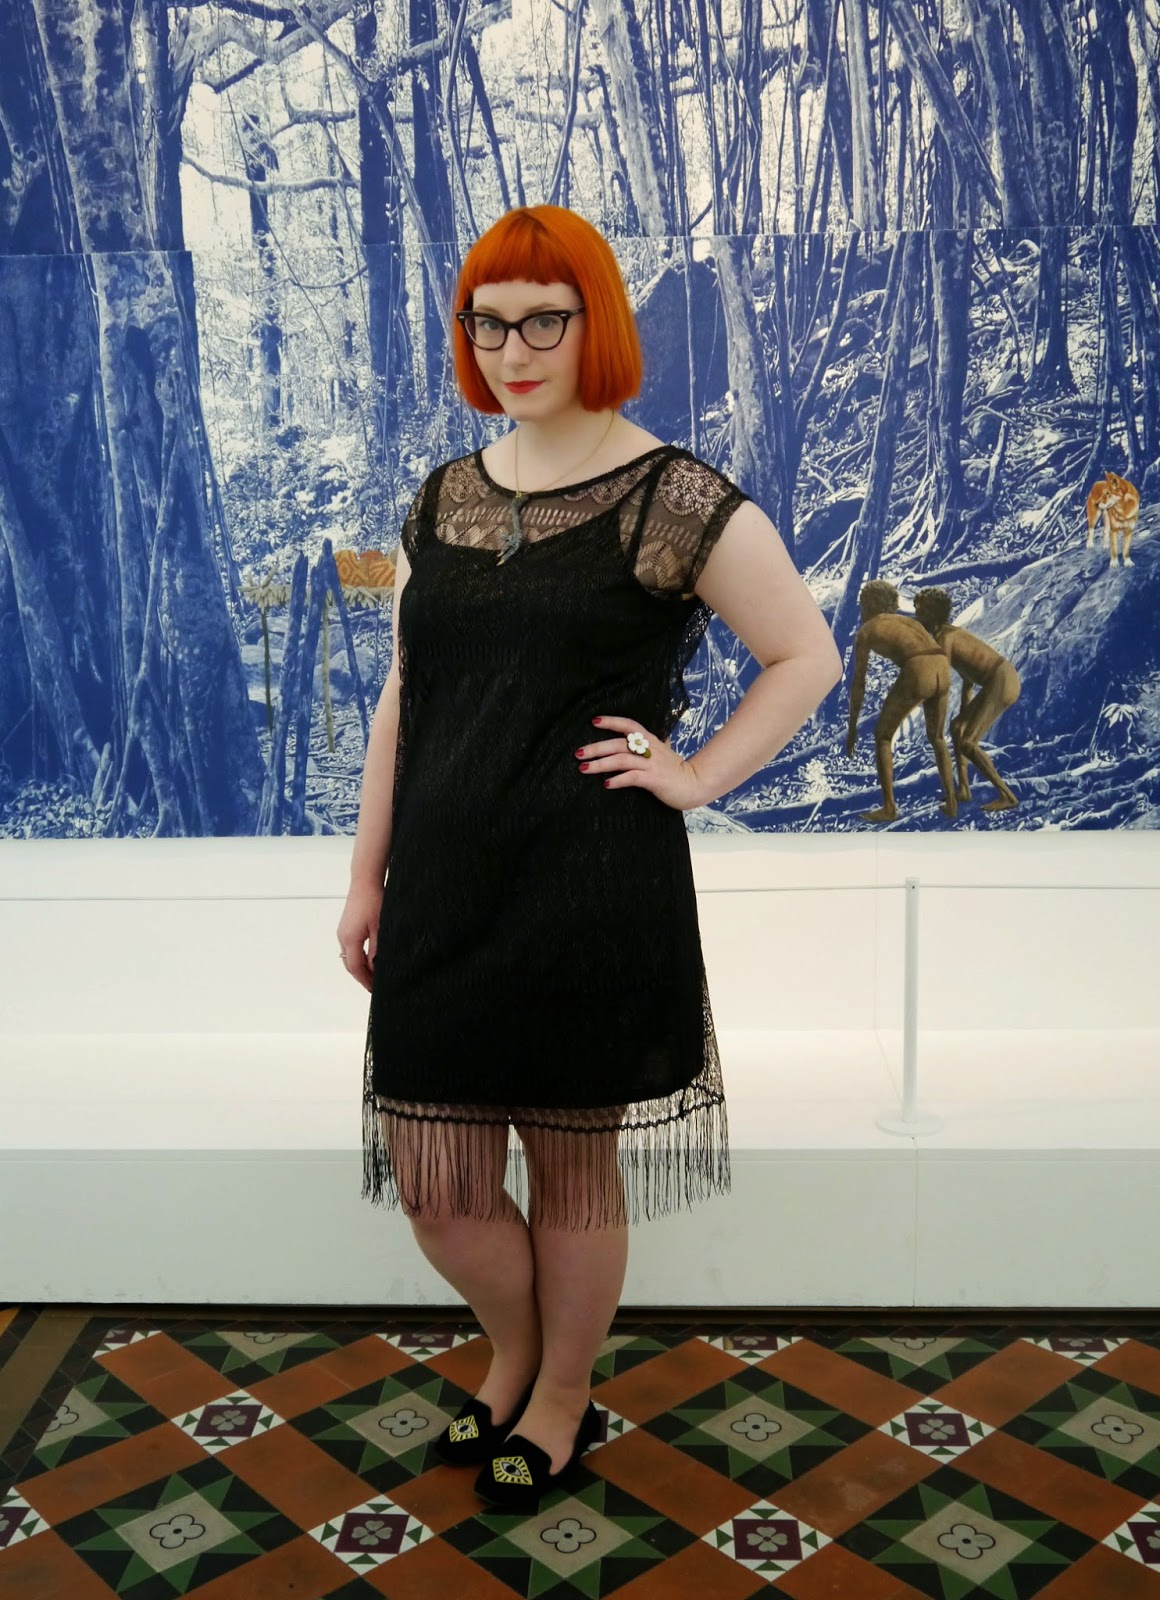 National Museum of Scotland, museum, scottish bloggers, edinburgh, edinburgh bloggers, Danie Mellor, outfit, Runaway fox, taxidermy jewellery, claw necklace, 1920s style, Styled by Helen, ginger hair, red head, The Edinburgh Casting Studio, animal friendly taxidermy